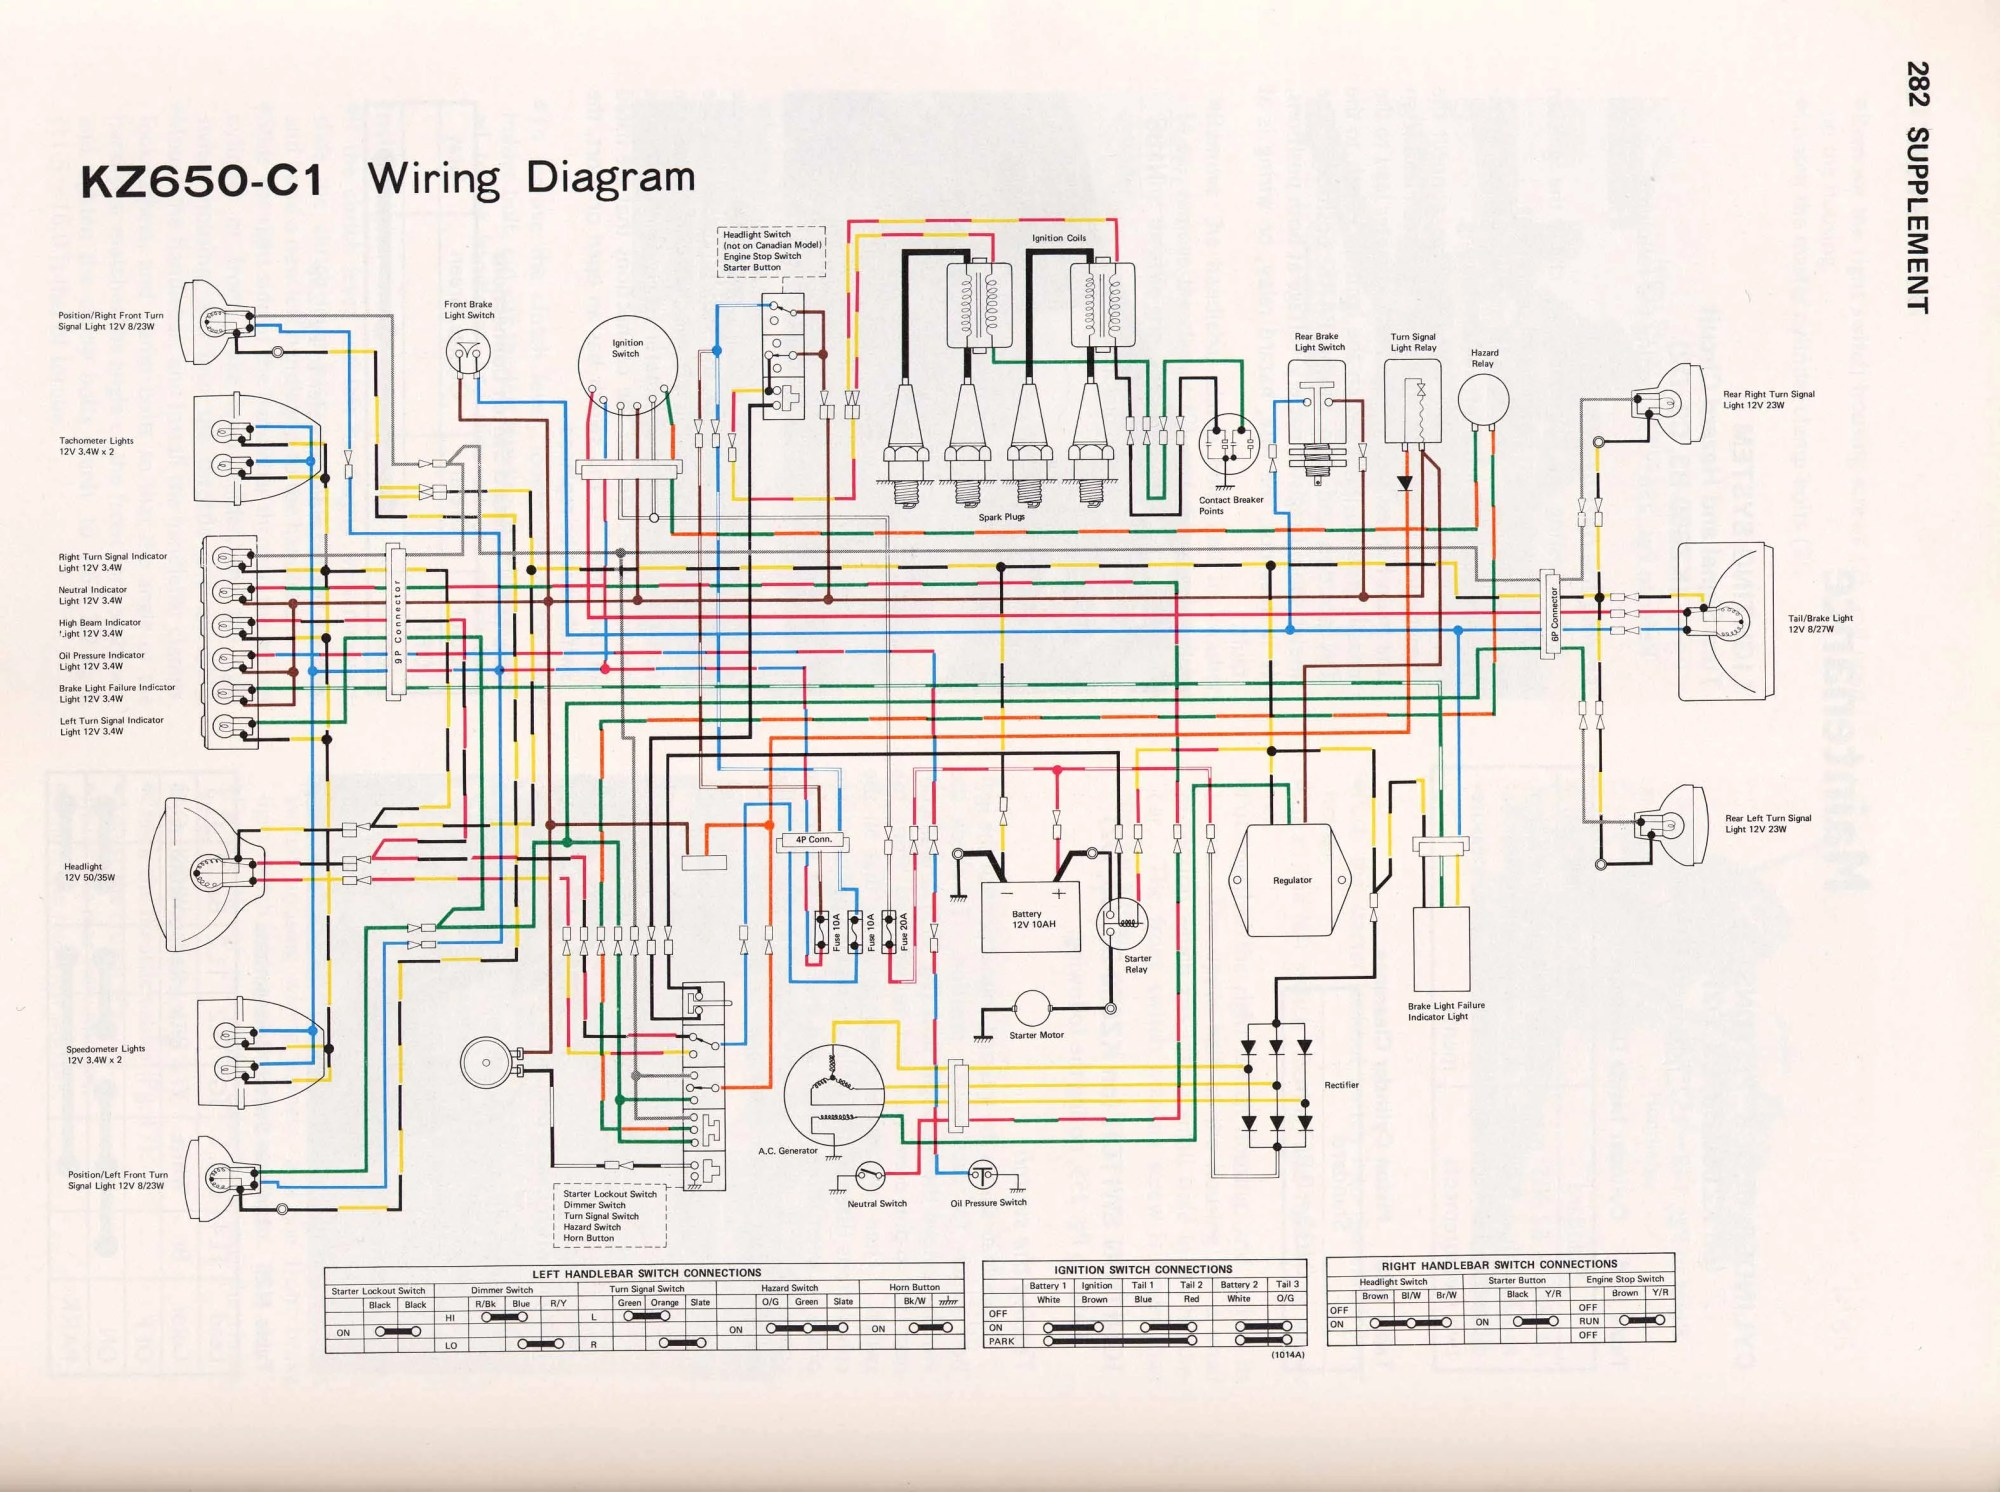 hight resolution of kz650 info wiring diagrams1982 kz650 wiring diagram 1